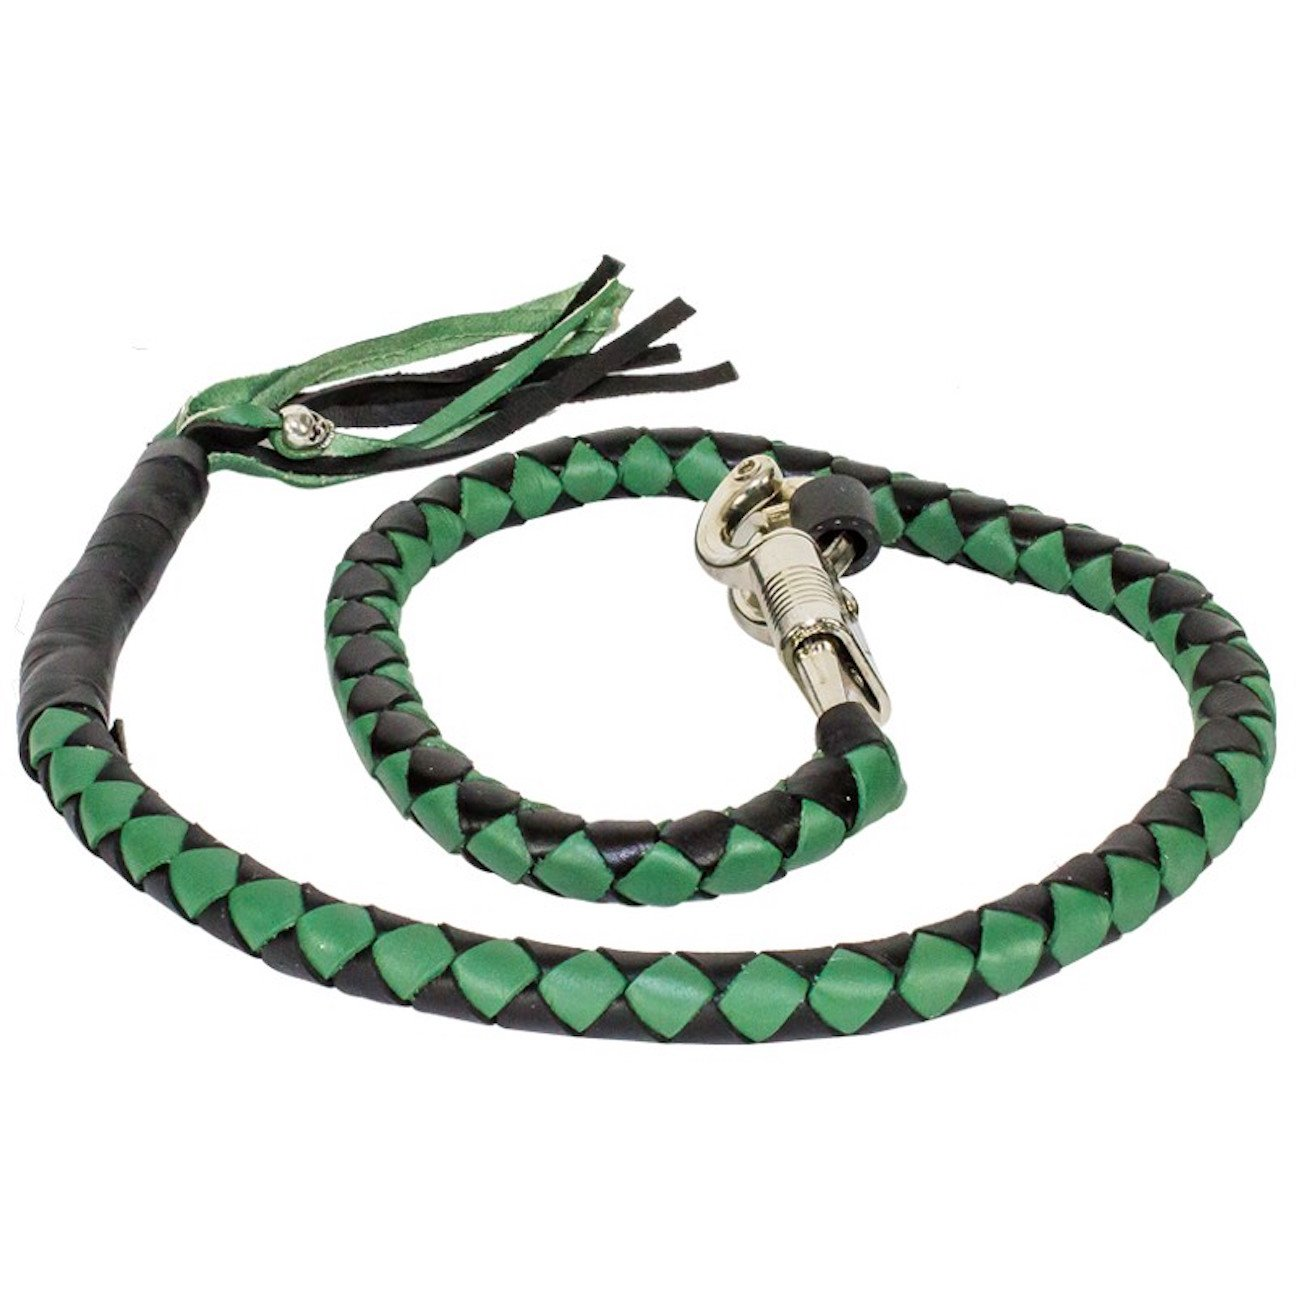 Black And Green Get Back Whip For Motorcycles